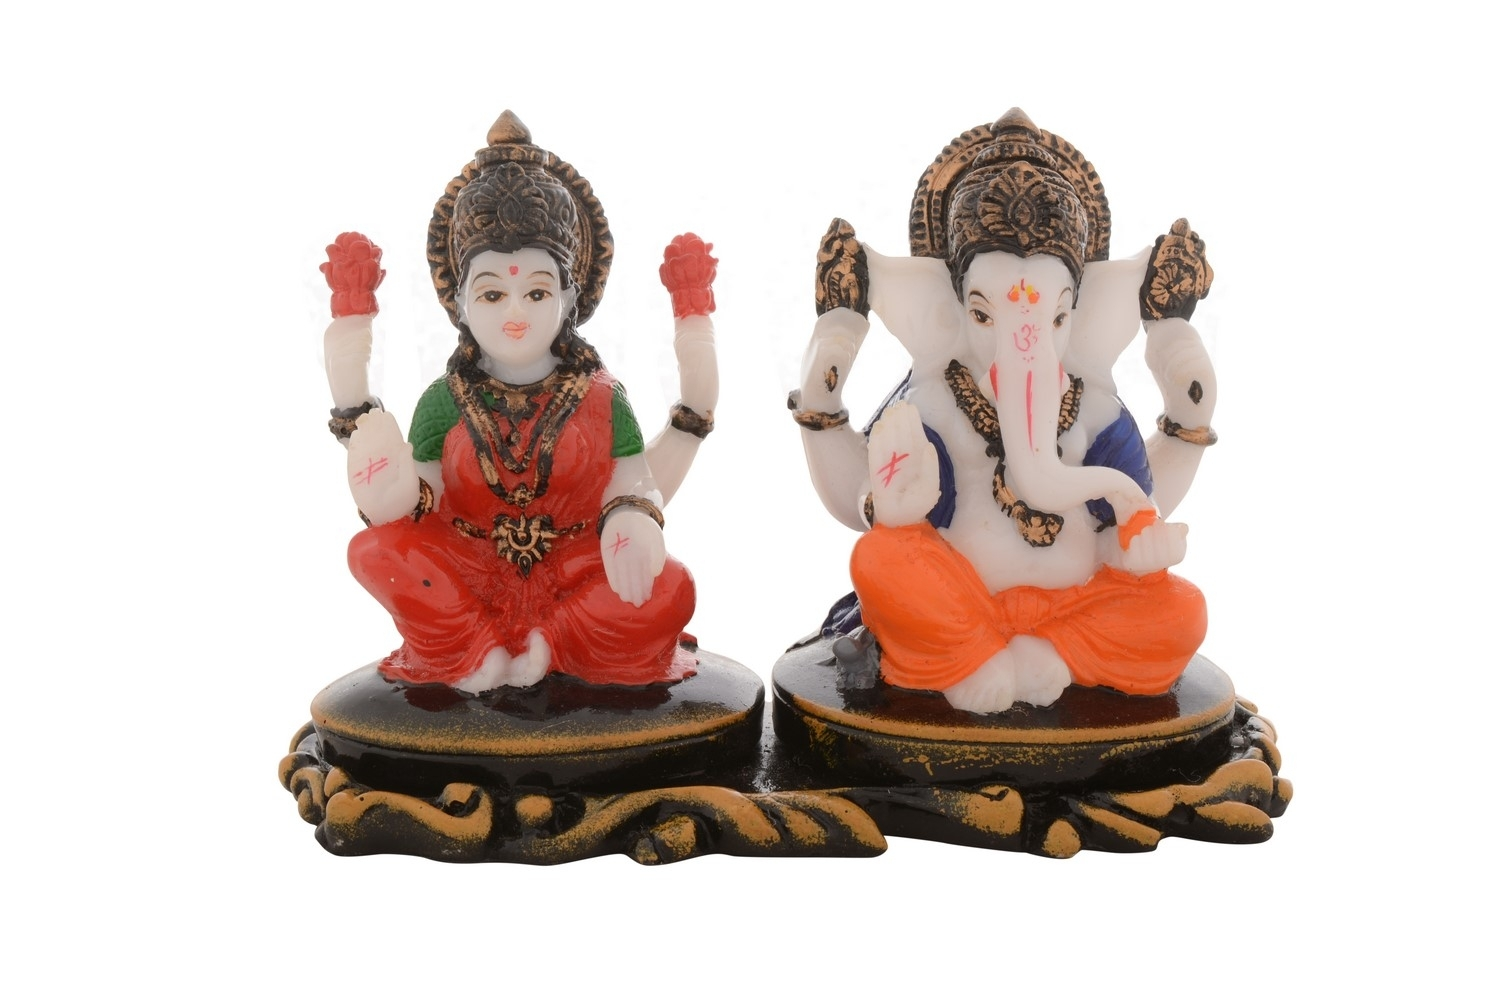 Premium Figurine of Goddess Laxmi and Lord Ganesha Indian Home Decor